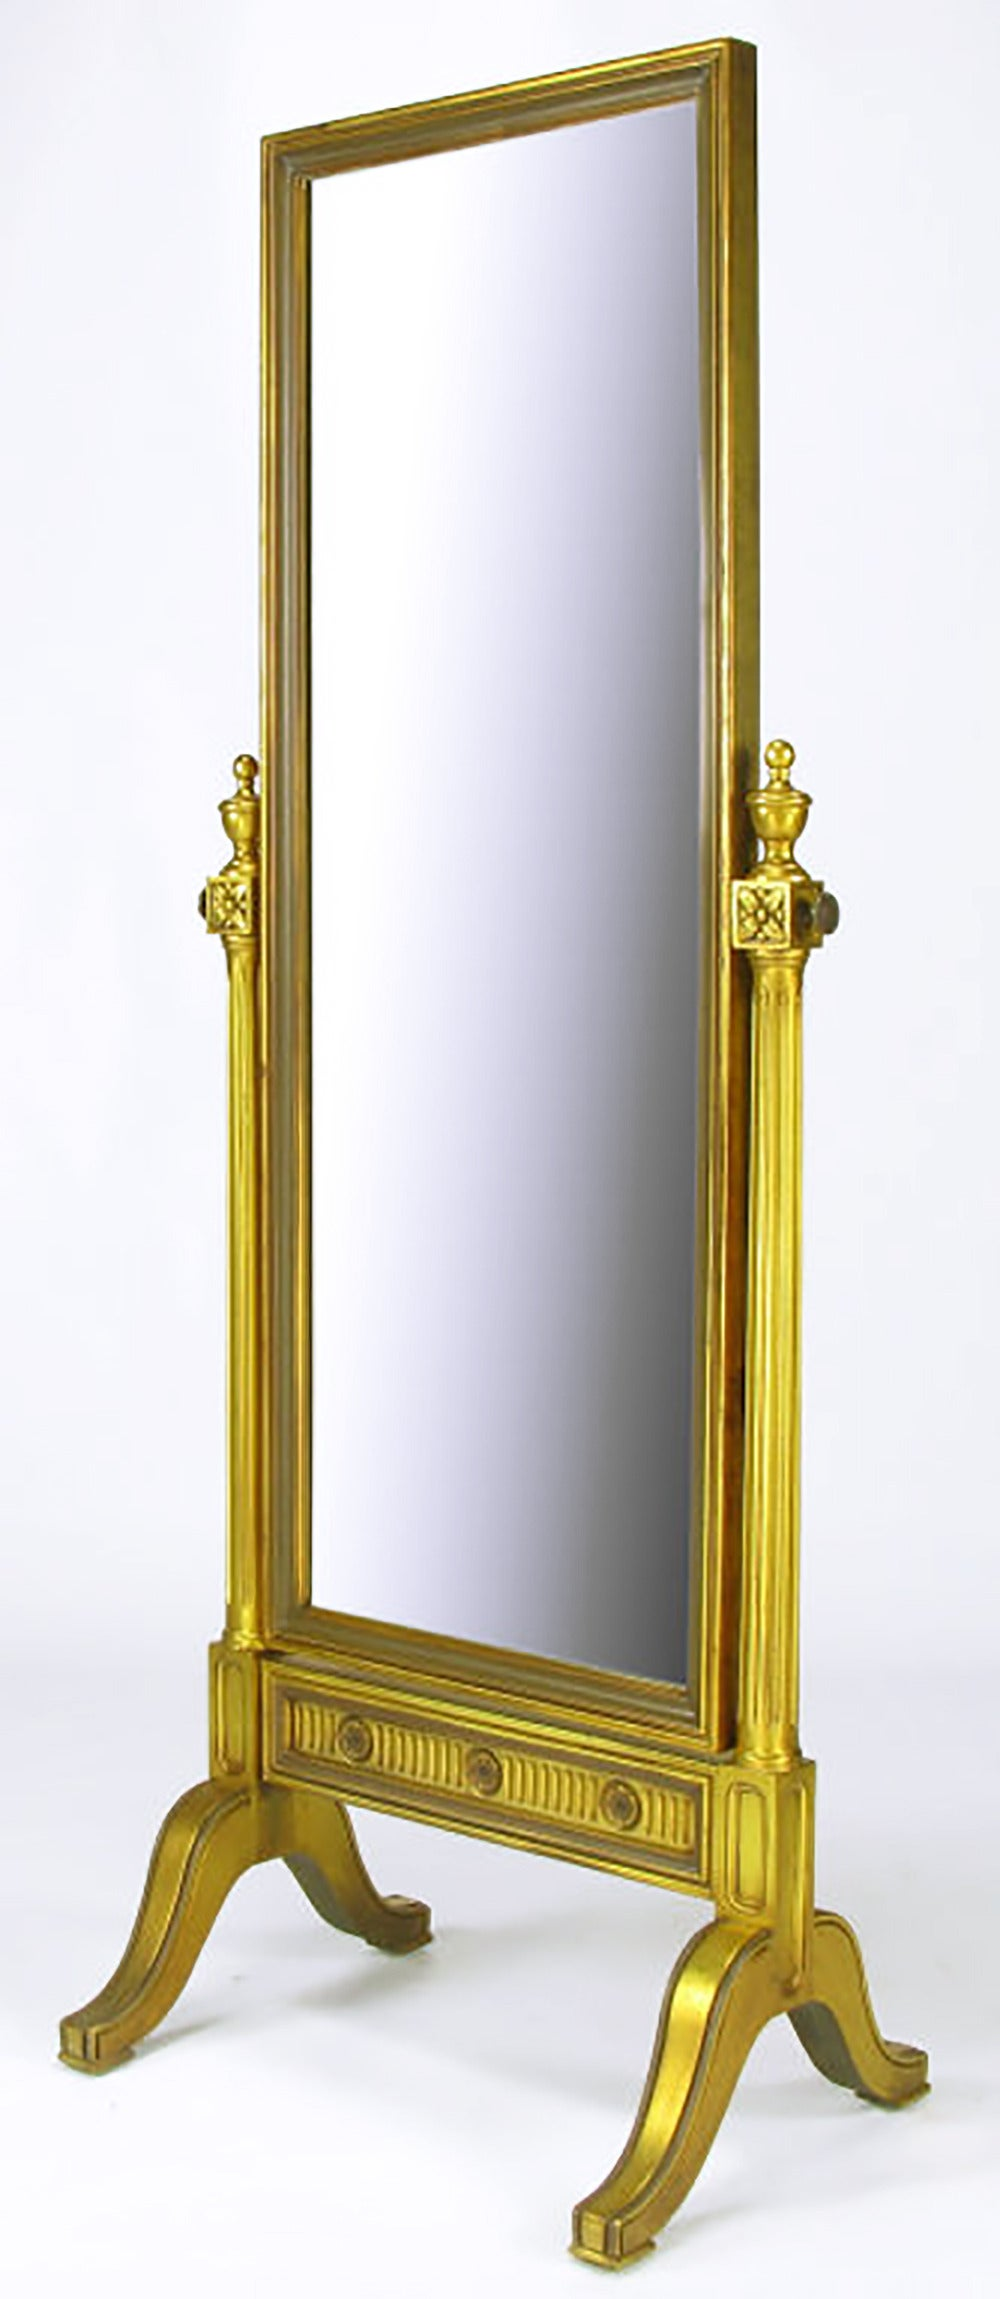 Gilt Wood Neoclassical Full Length Cheval Floor Mirror For Sale at 1stdibs